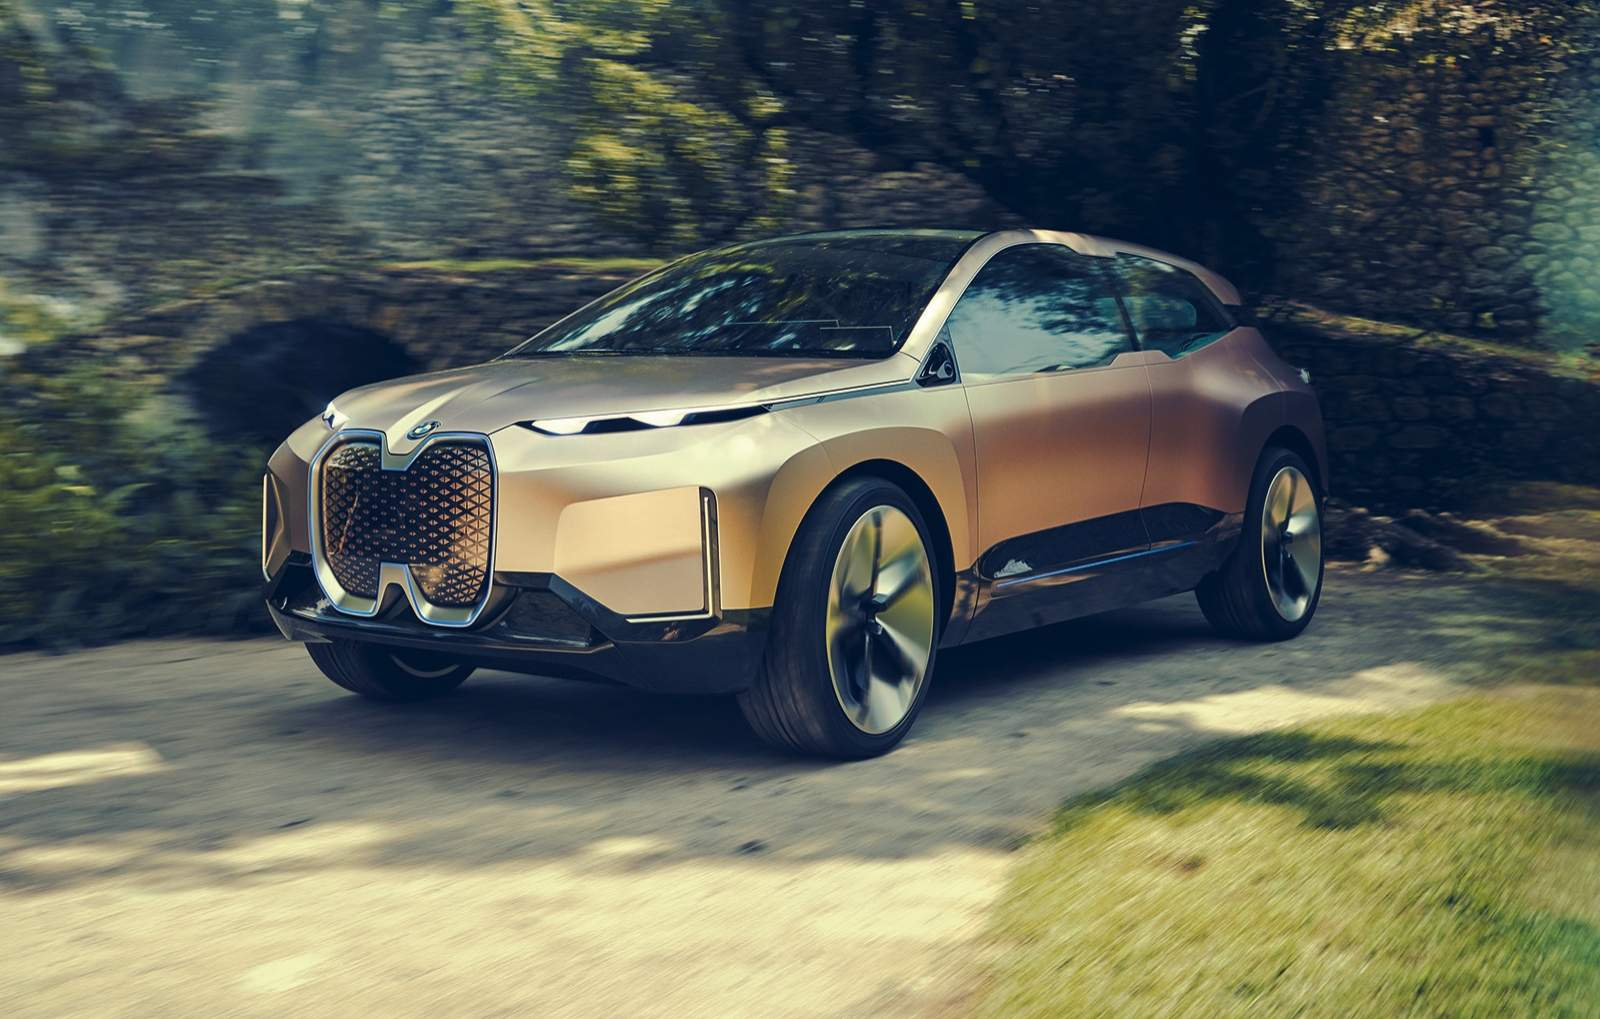 Leaked Bmw Vision Inext Concept Photos Surface Ahead Of